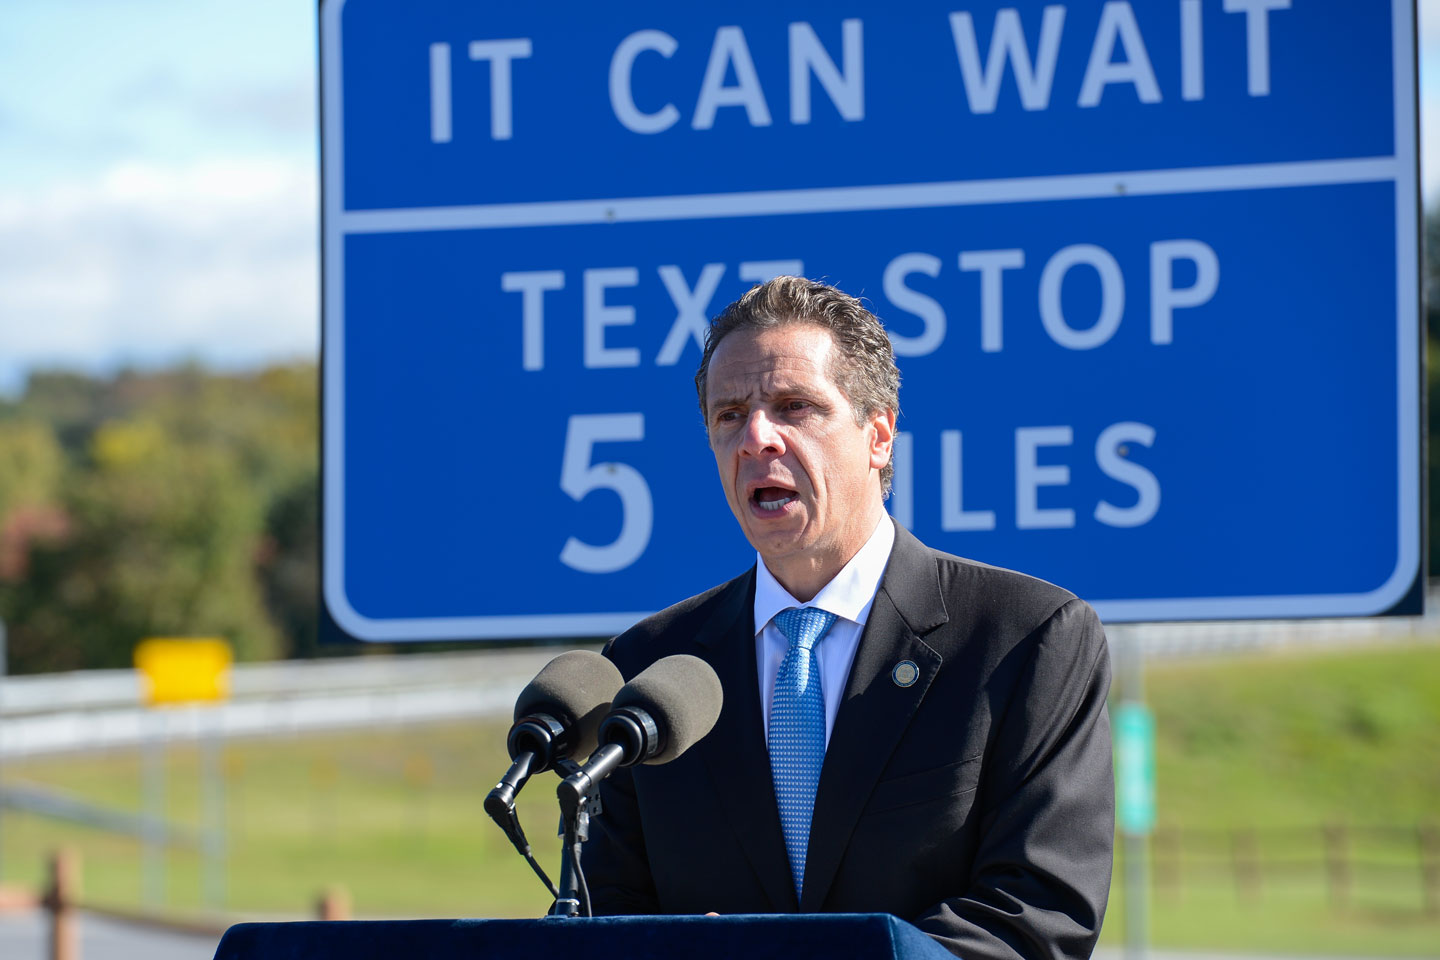 New-York-State-Texting-Roadsigns